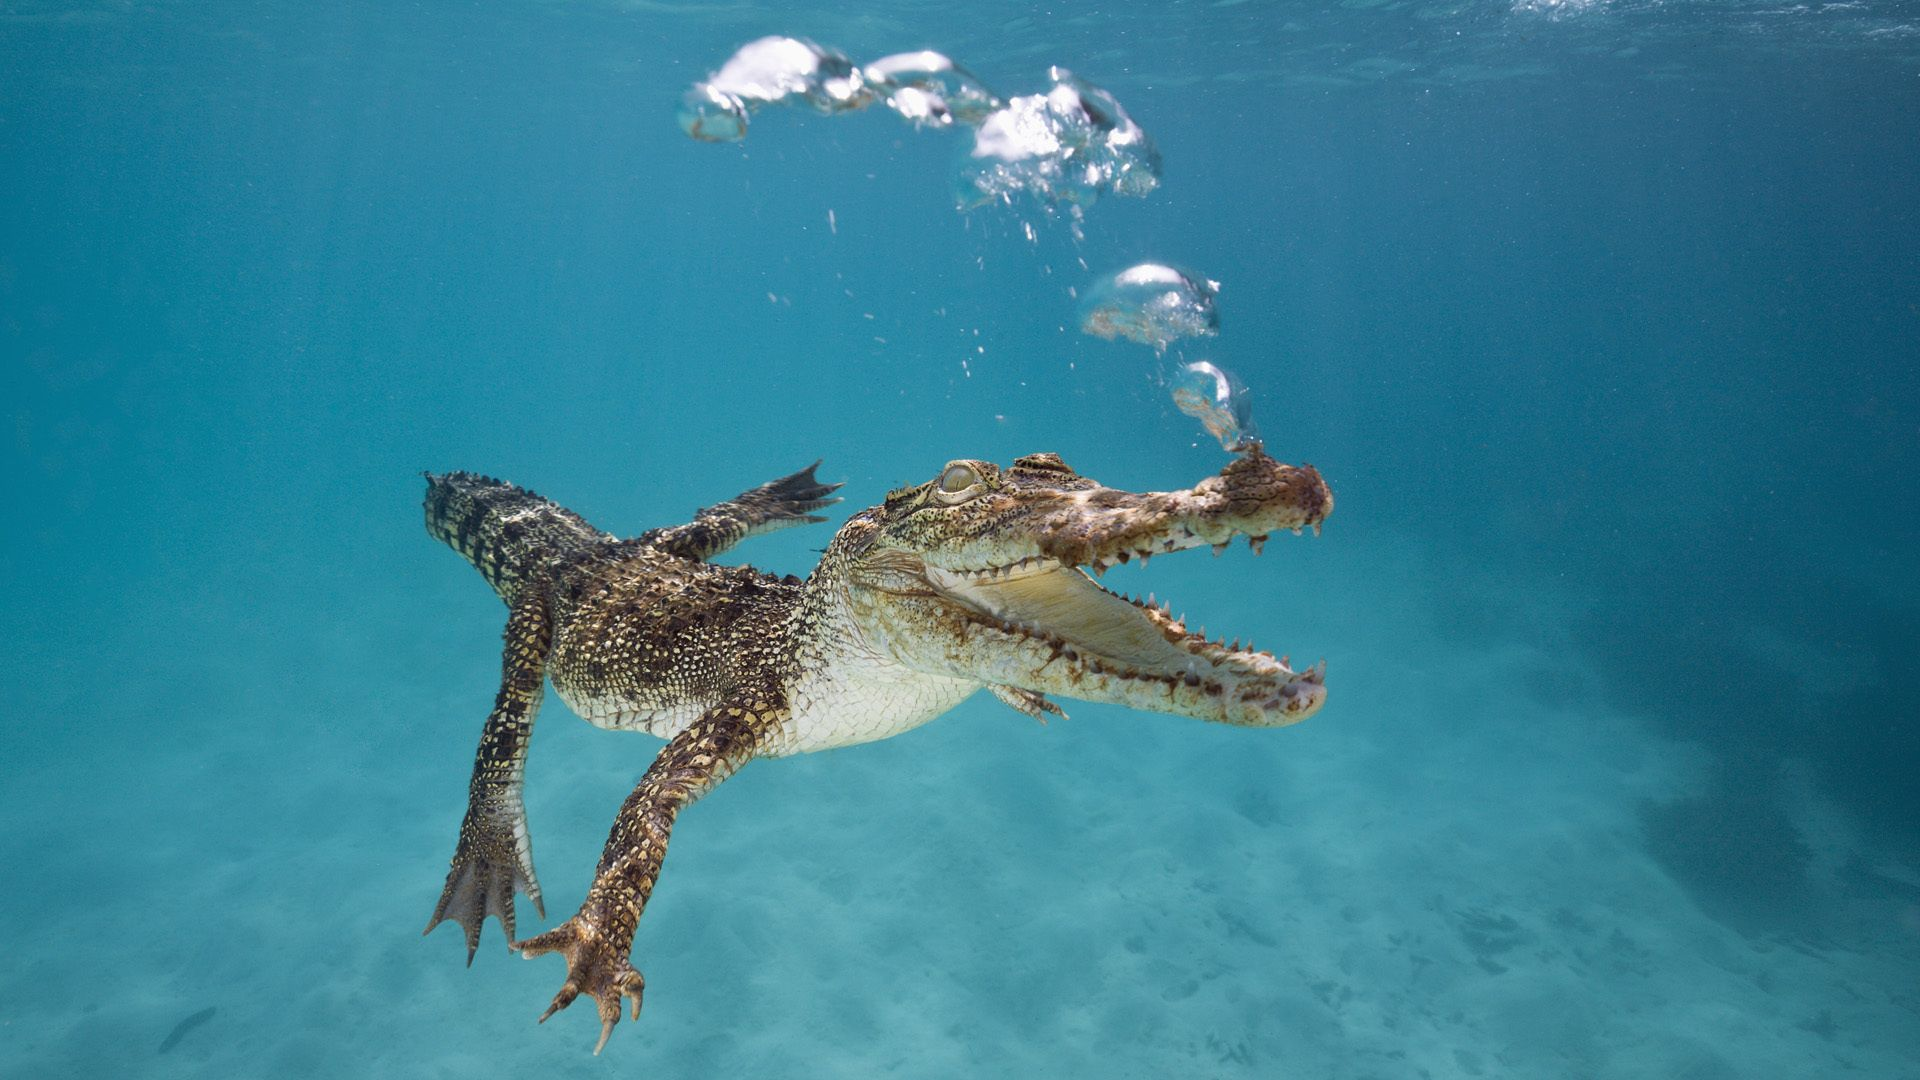 crocodile, alligator, cayman, wallpapers , Pc backgrounds, free photos